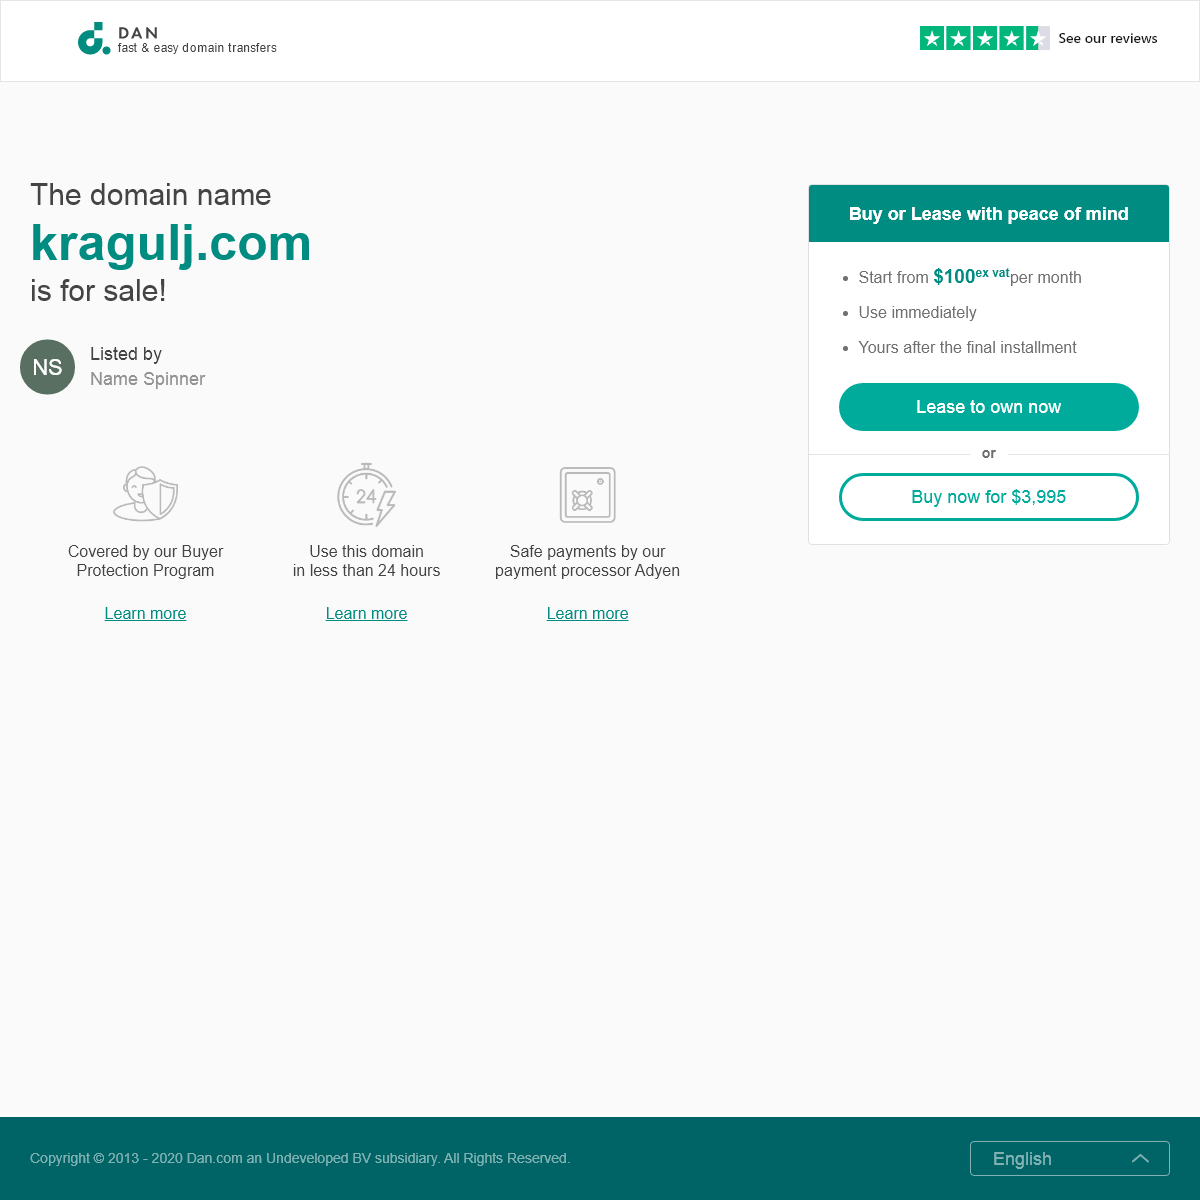 The domain name kragulj.com is for sale